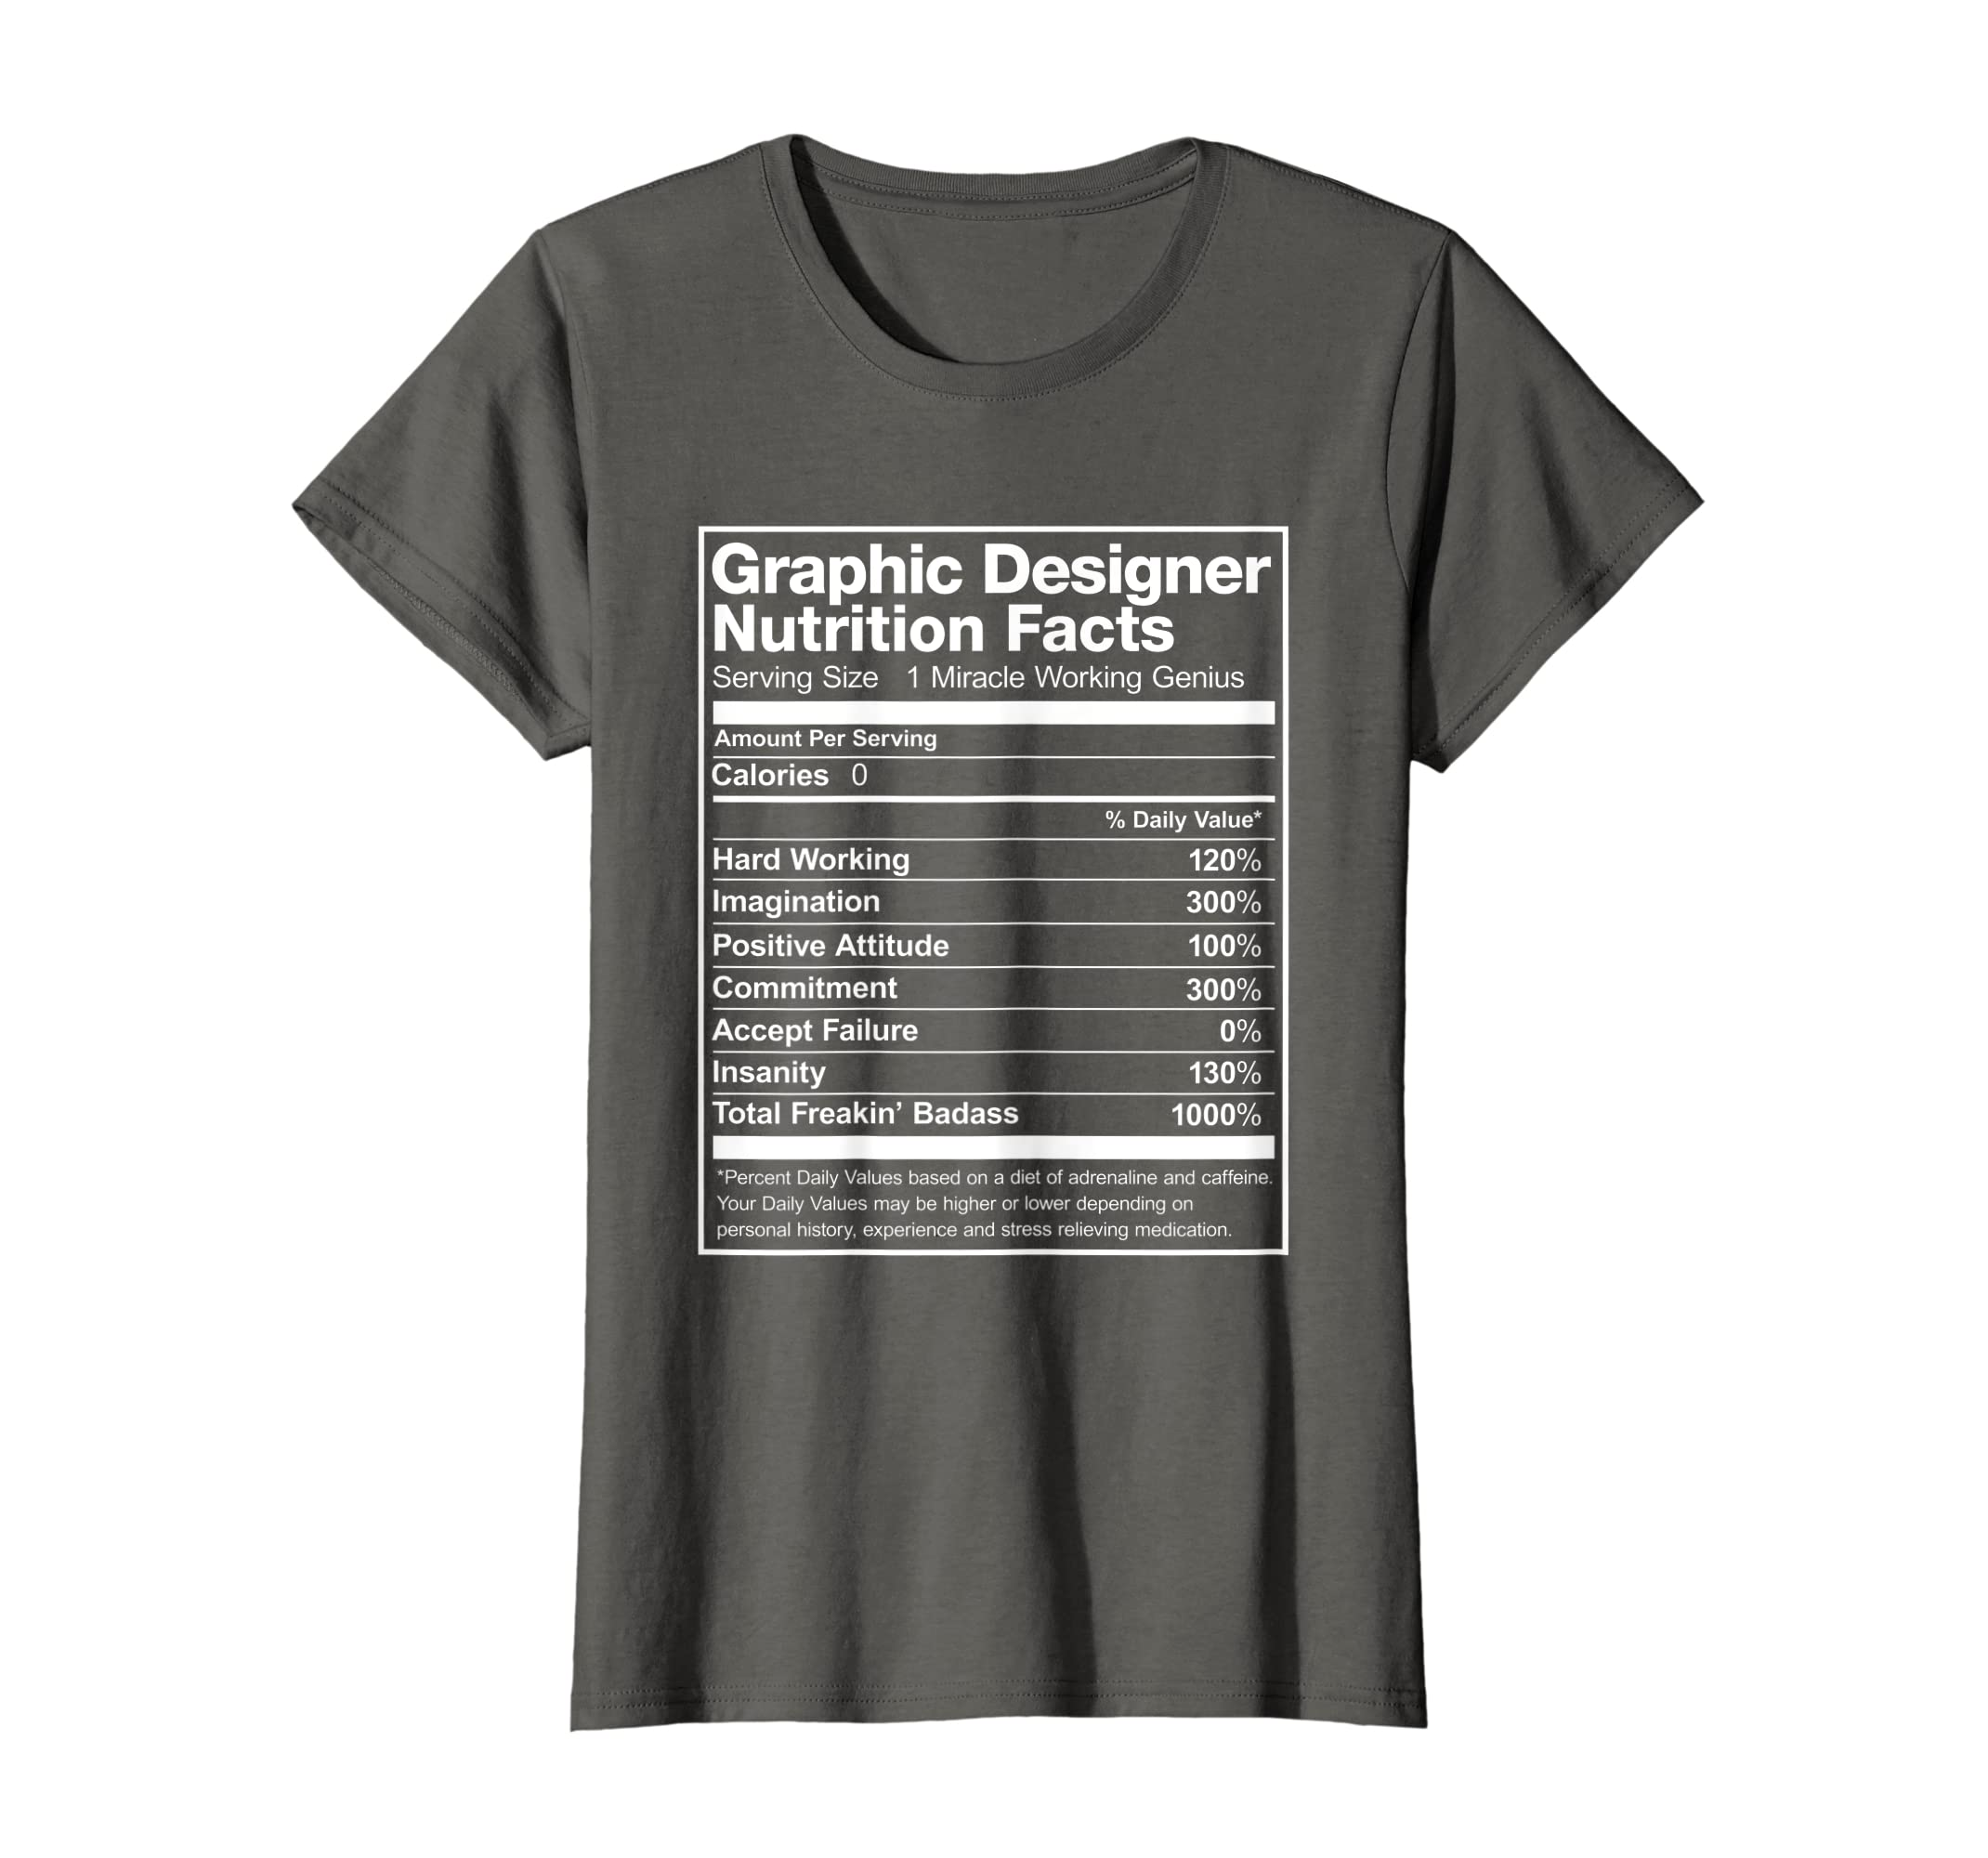 a40ba510a Amazon.com: Graphic Designer Nutrition Facts Funny T-Shirt: Clothing